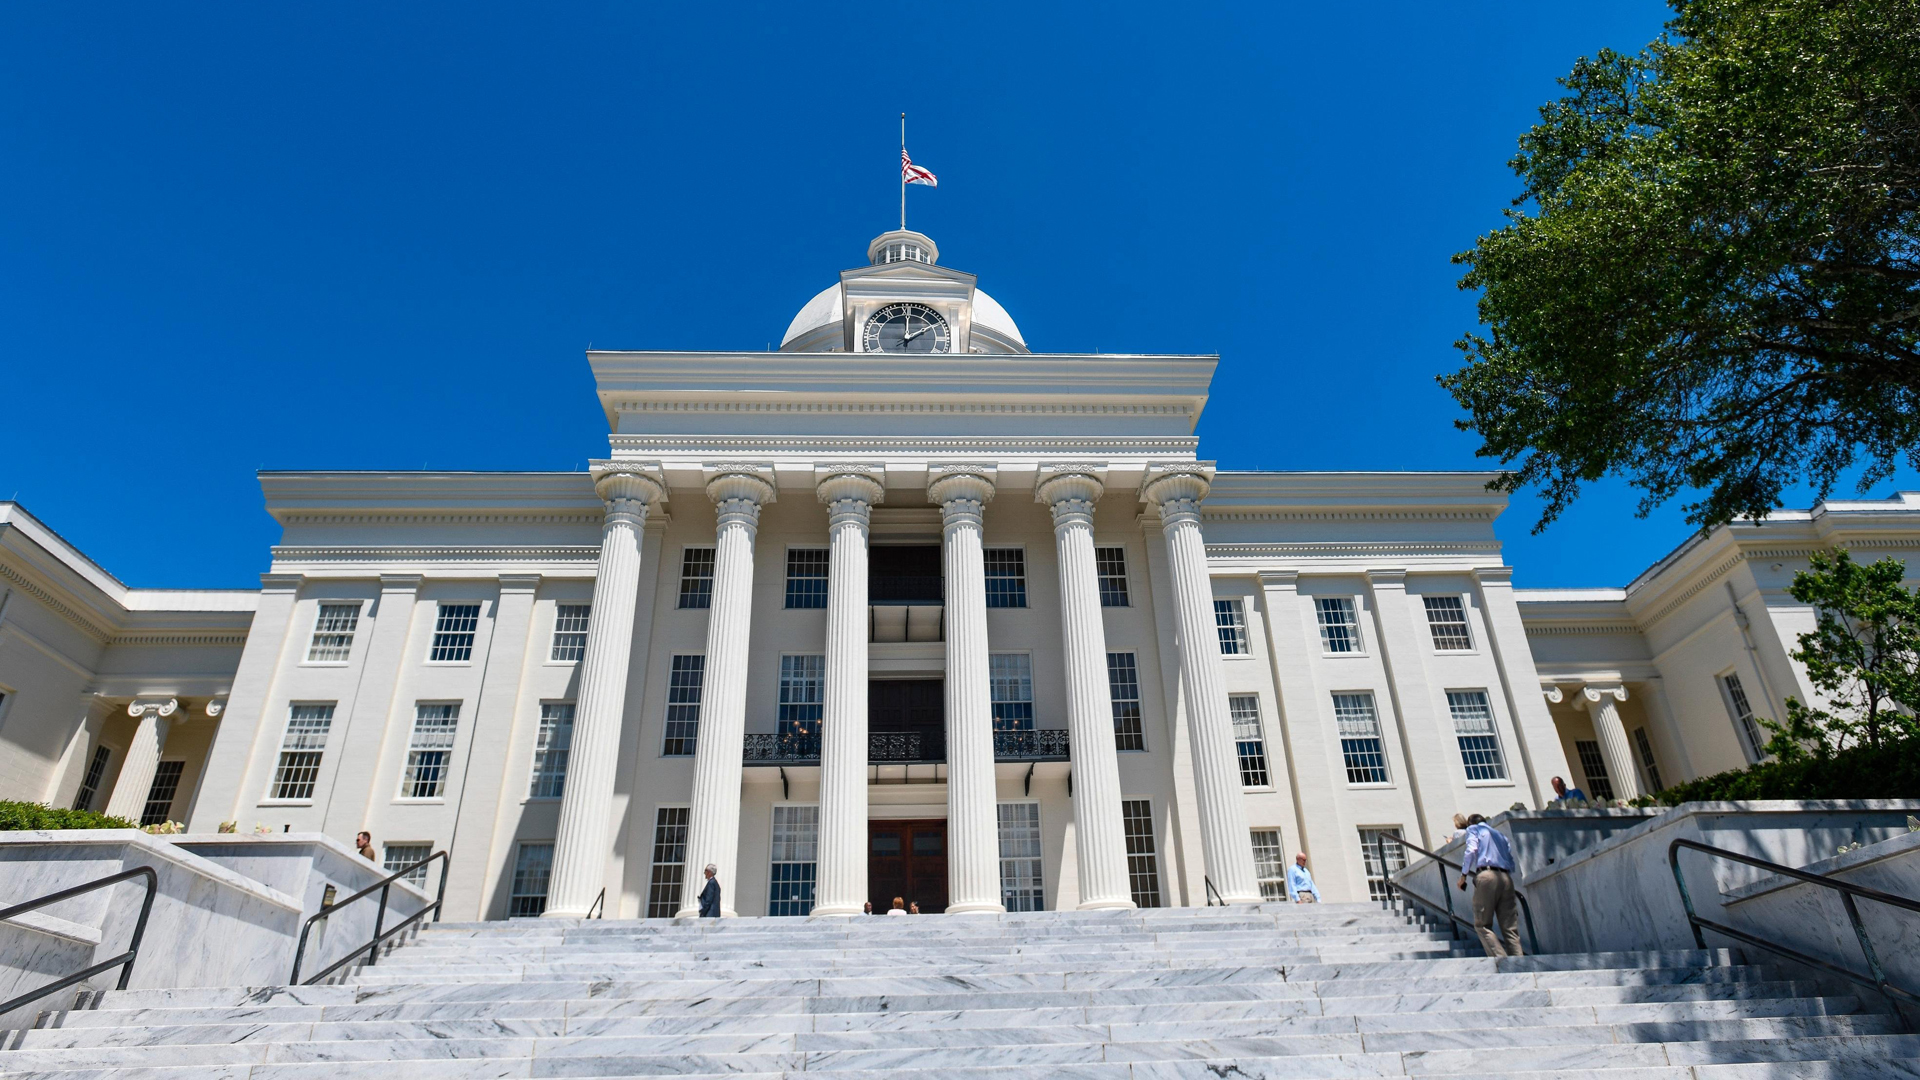 The Alabama State Capitol stands on May 15, 2019 in Montgomery, Alabama. (Credit: Julie Bennett/Getty Images)